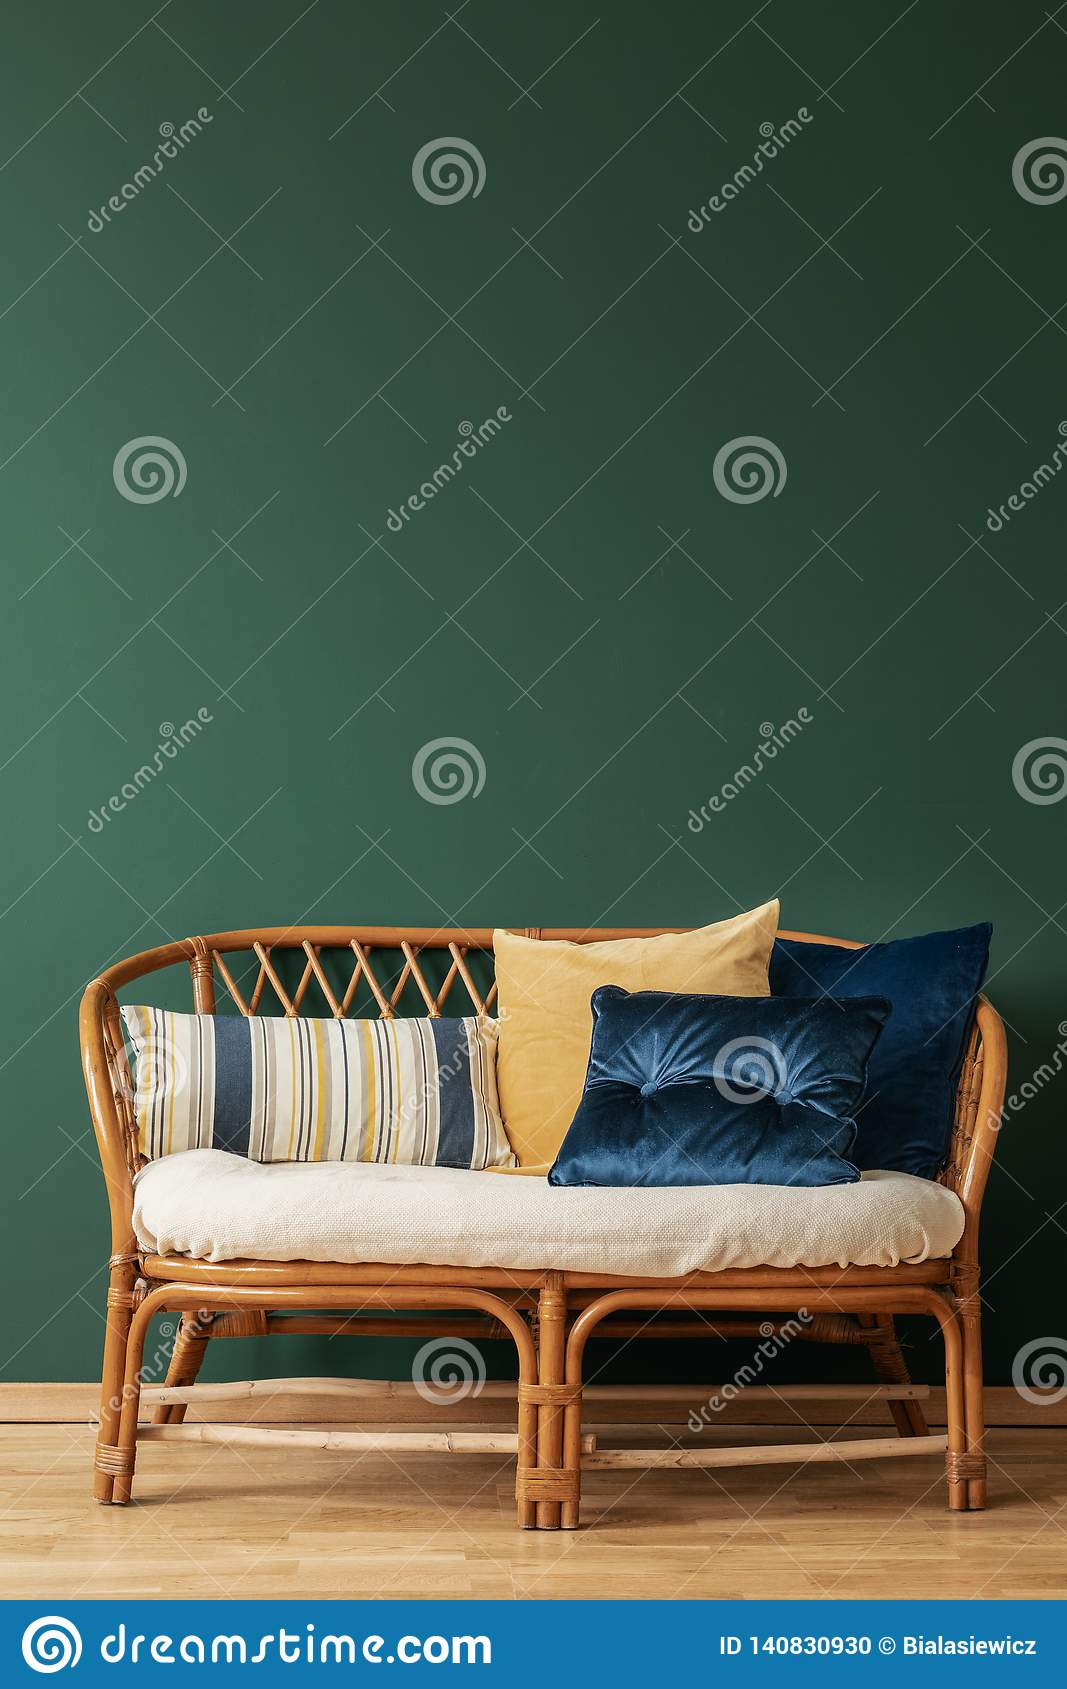 Image of: Rattan Sofa With Pillows In Elegant Living Room Interior With Copy Space On The Empty Grey Wall Stock Photo Image Of Rattan Room 140830930